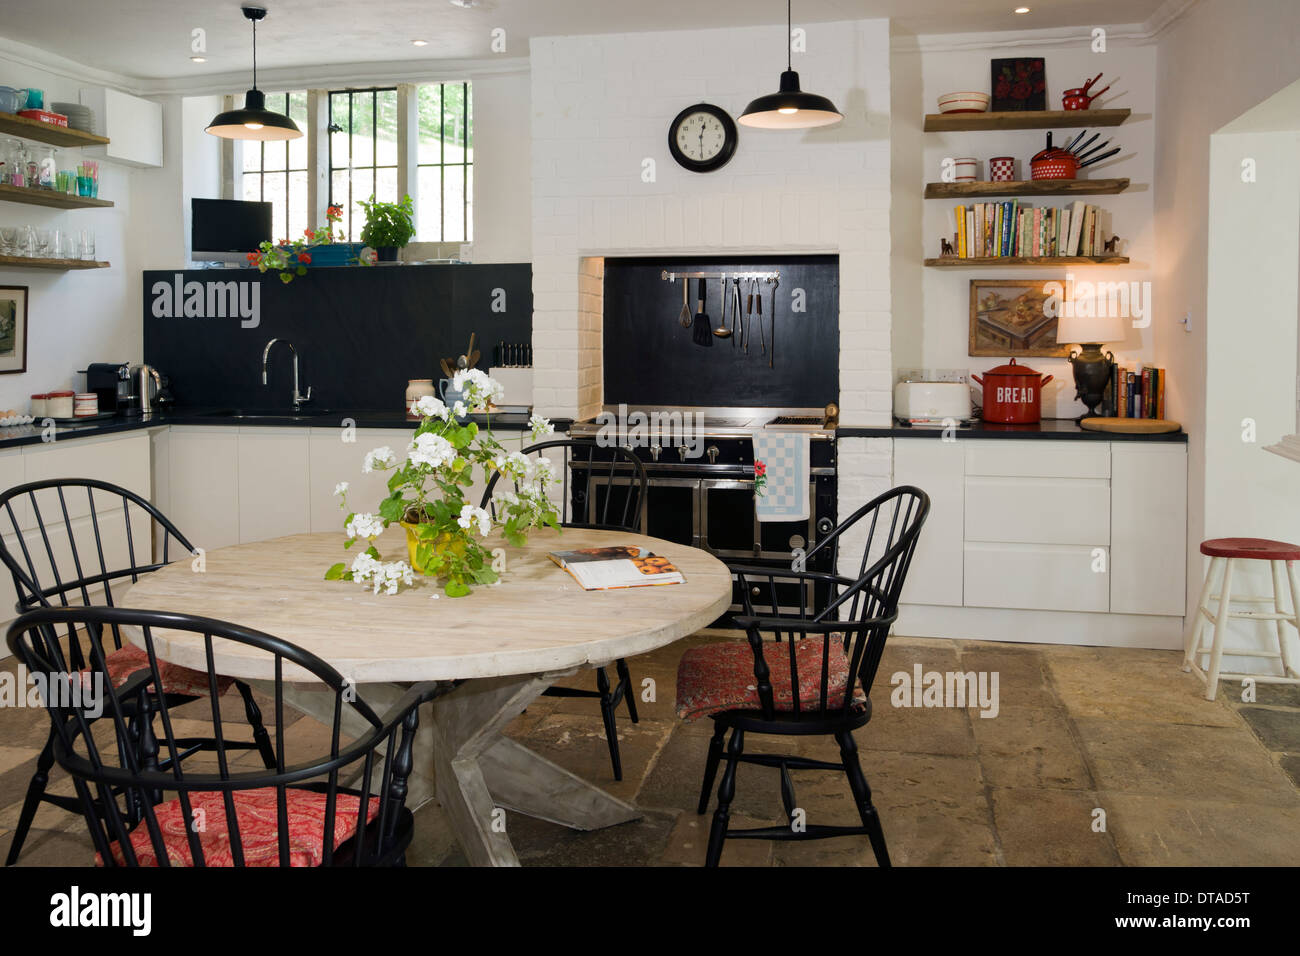 Contemporary shabby chic farmhouse kitchen. - Stock Image